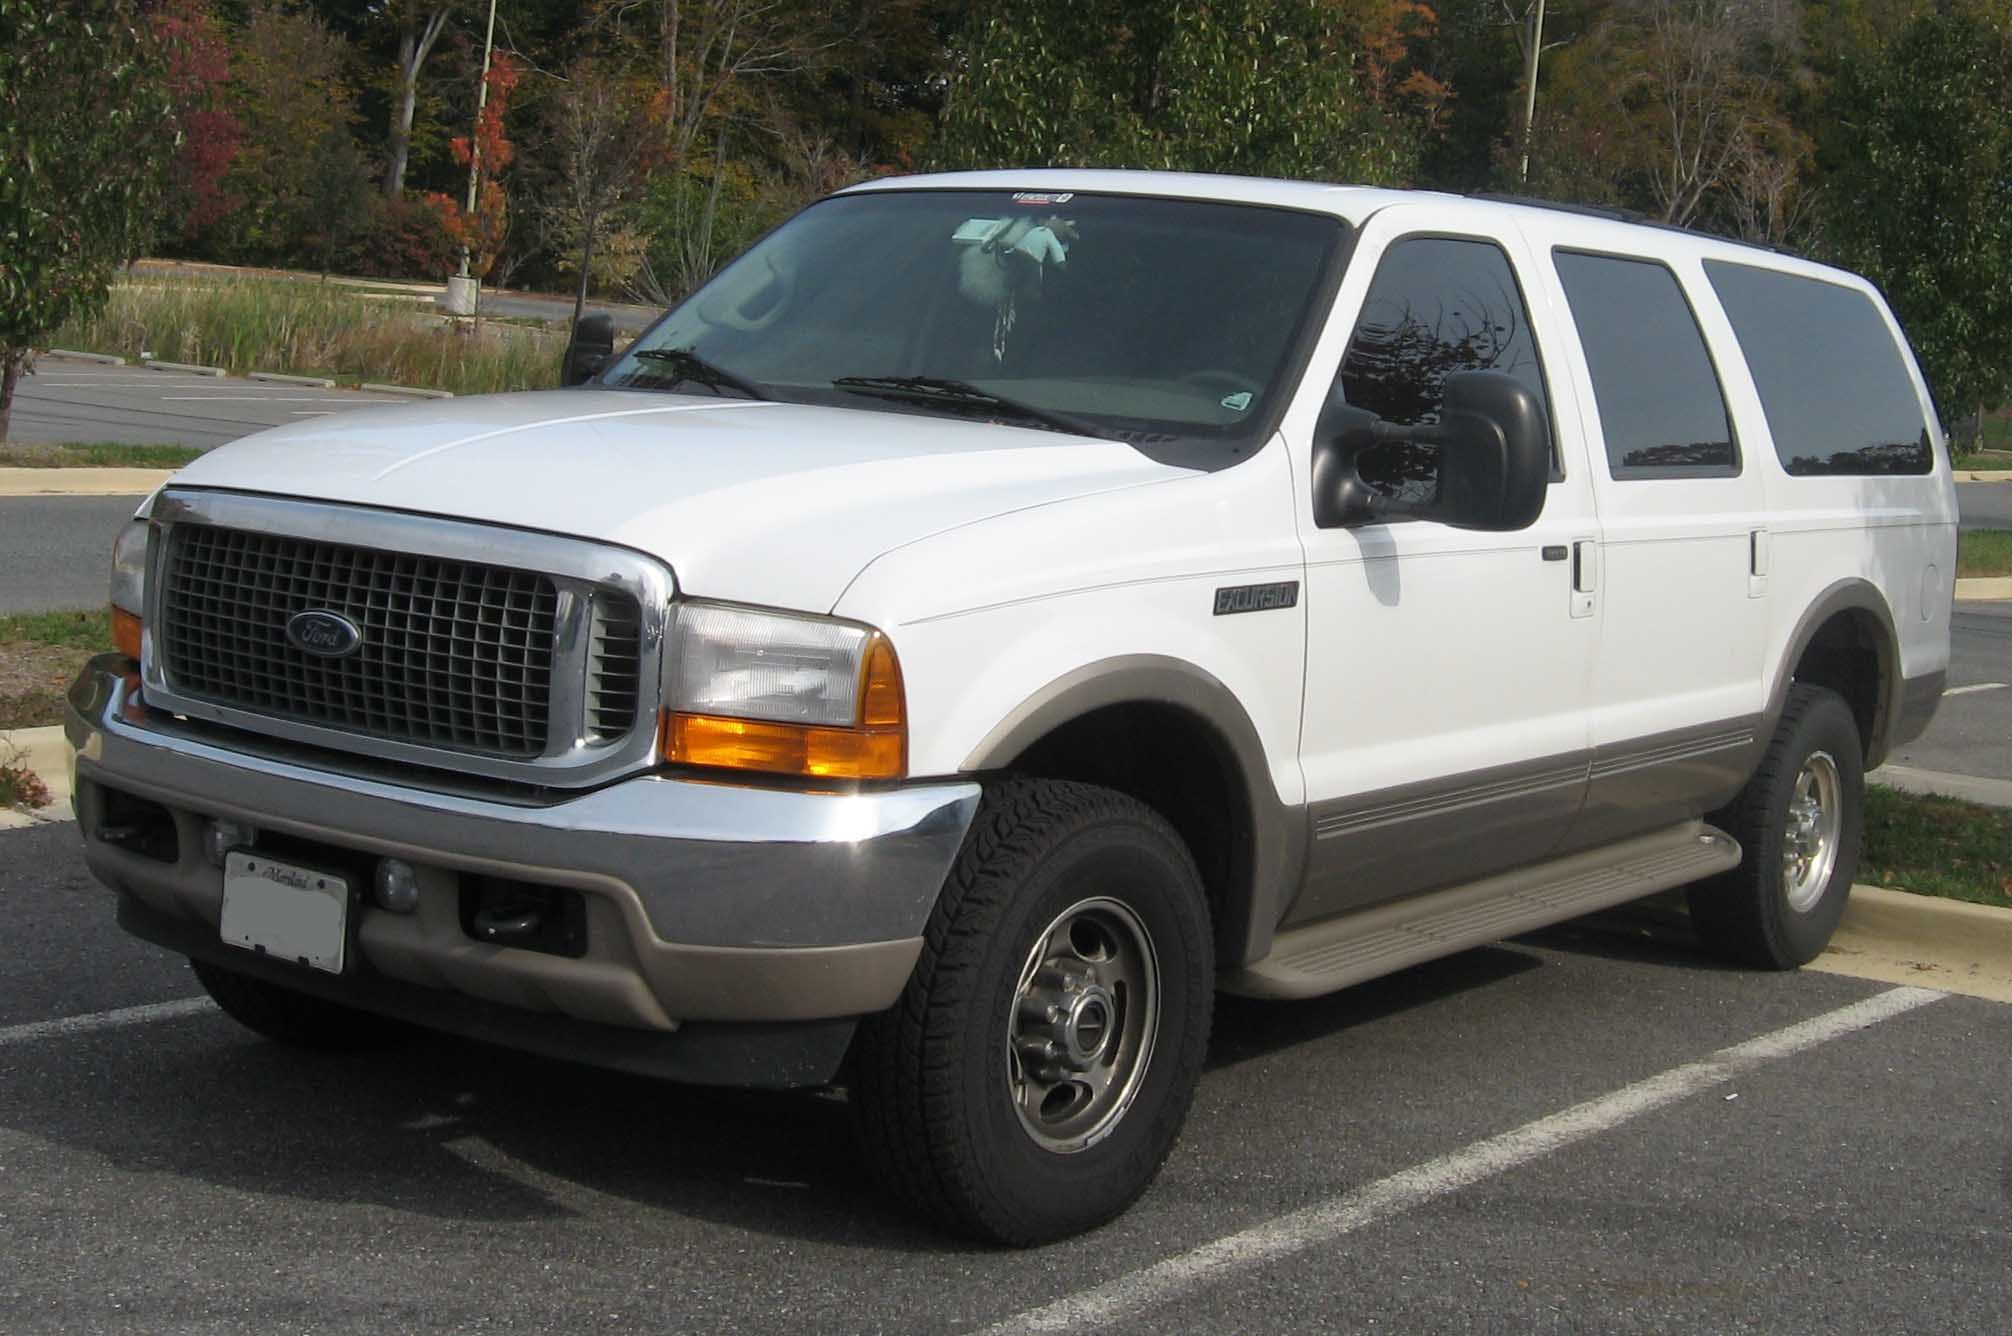 Ford Excursion 2014 The ford excursion is a